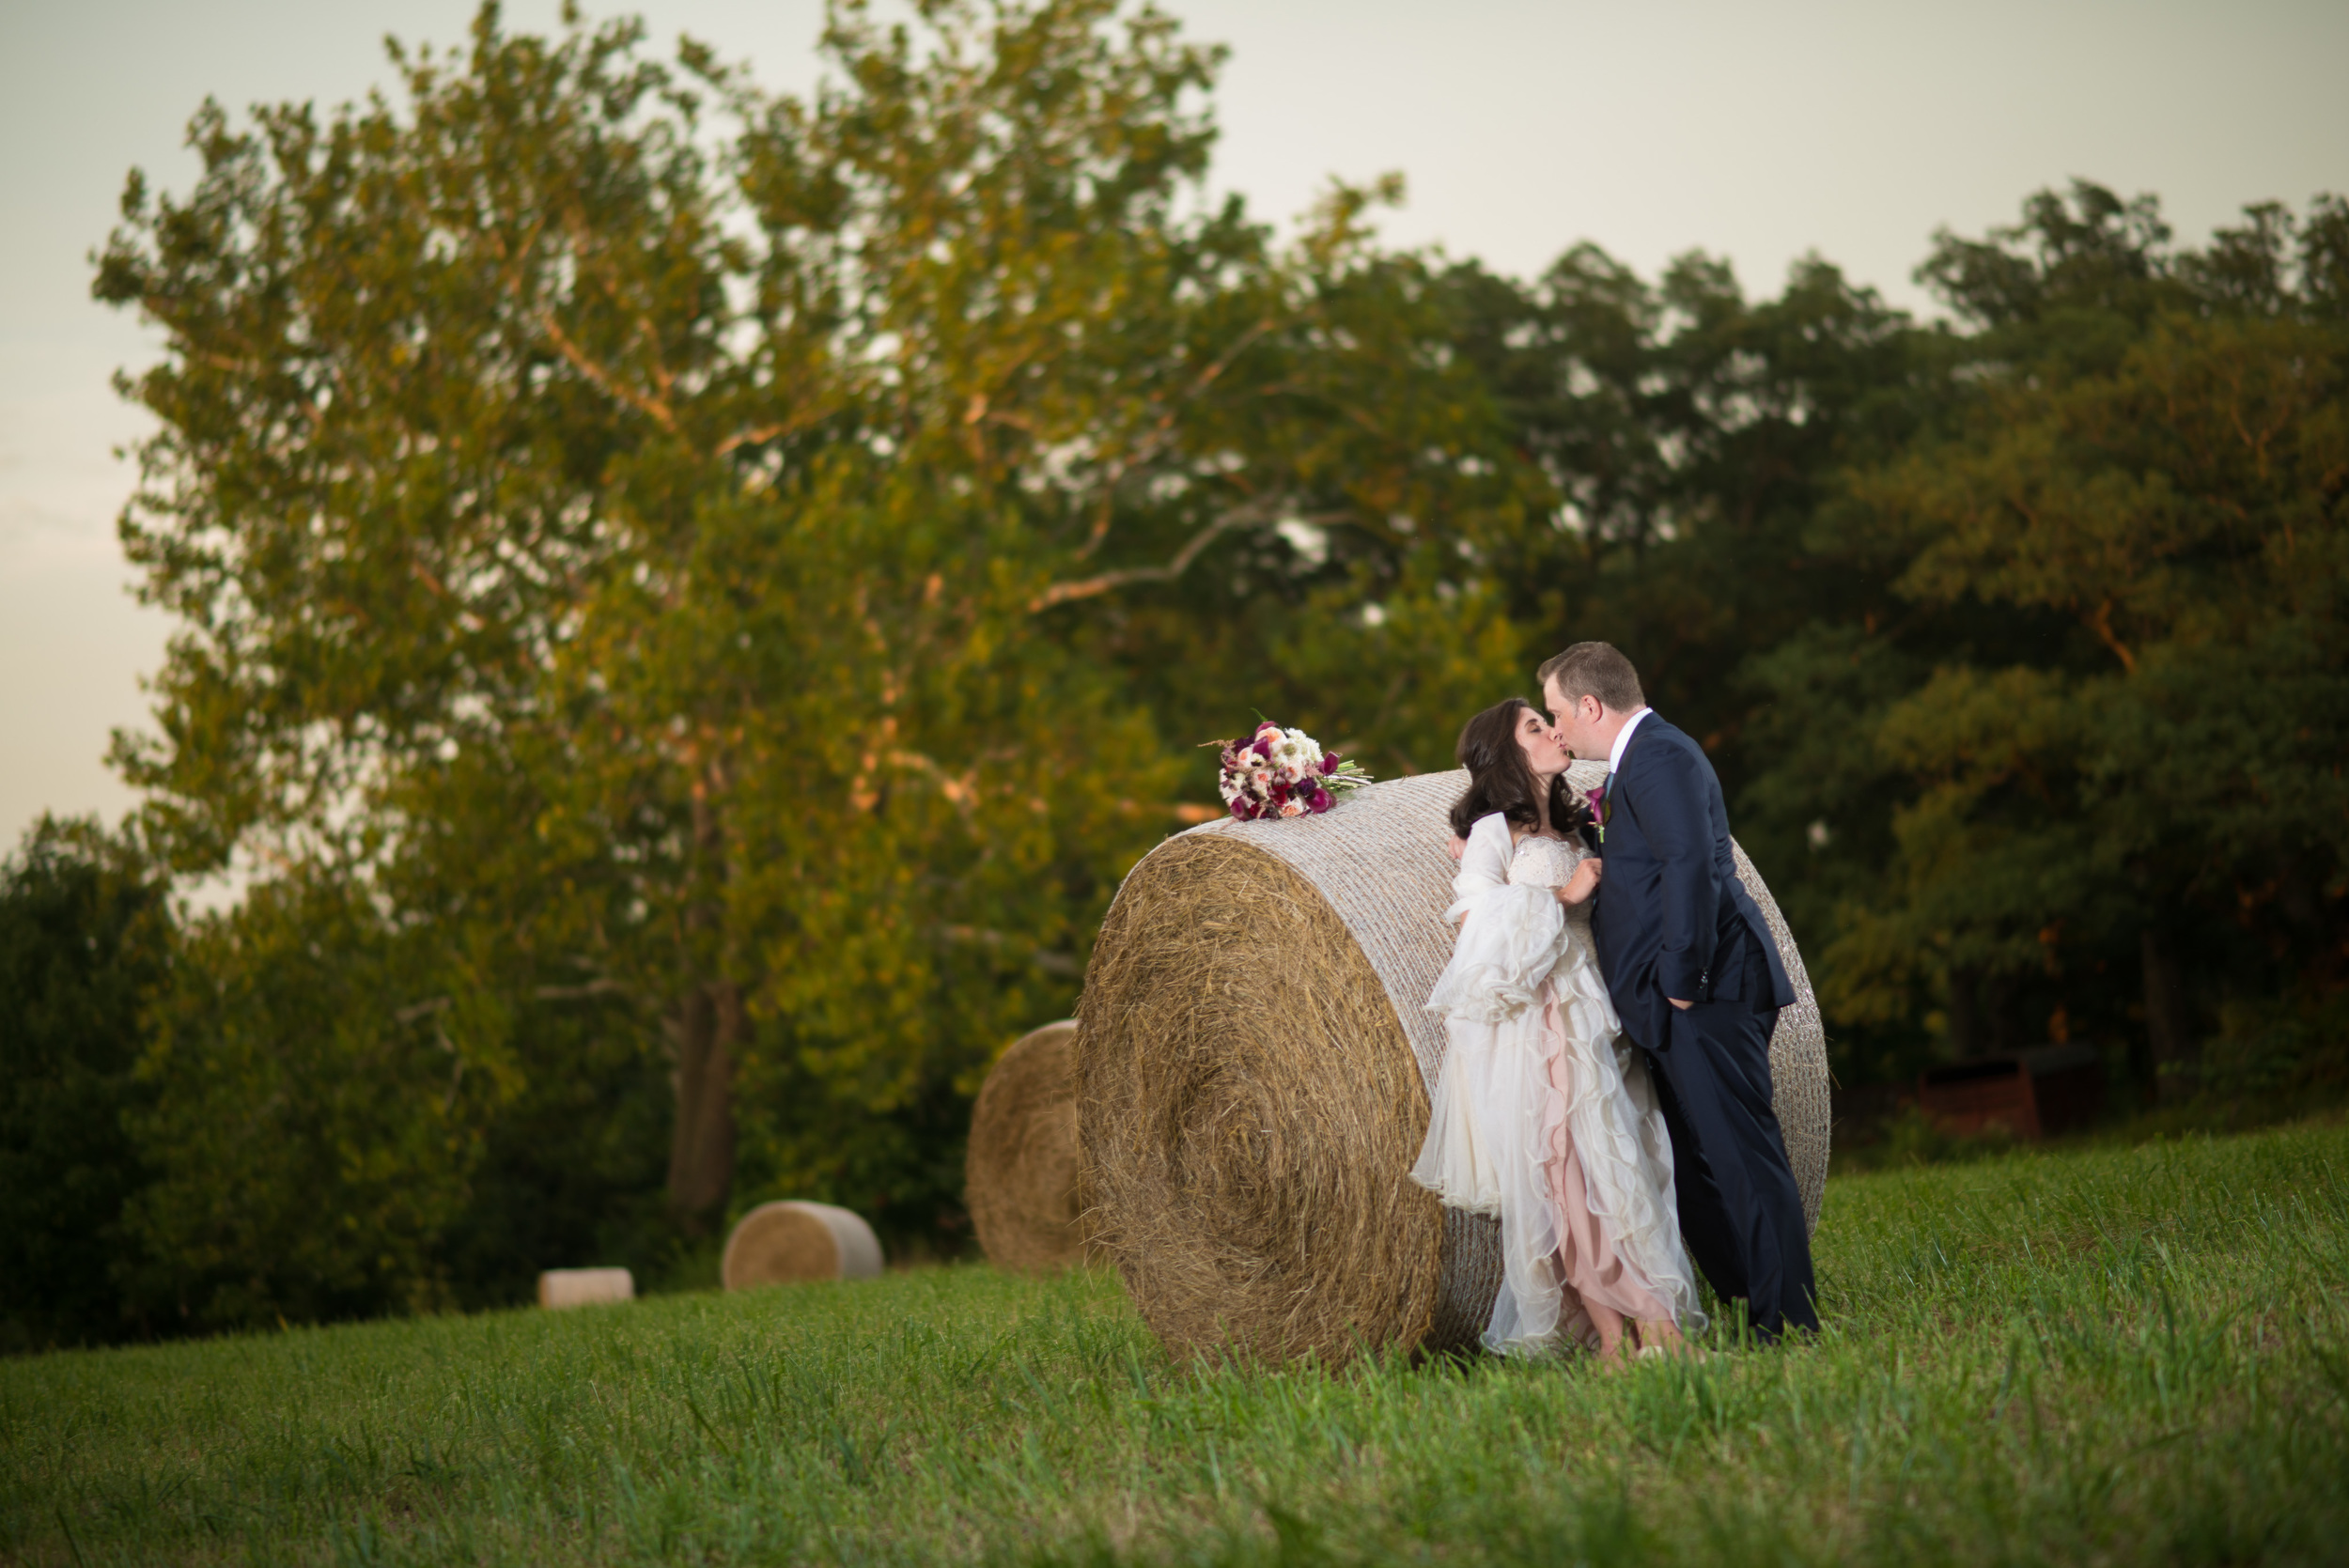 Lauren&ClayWeddingFavs-070.jpg